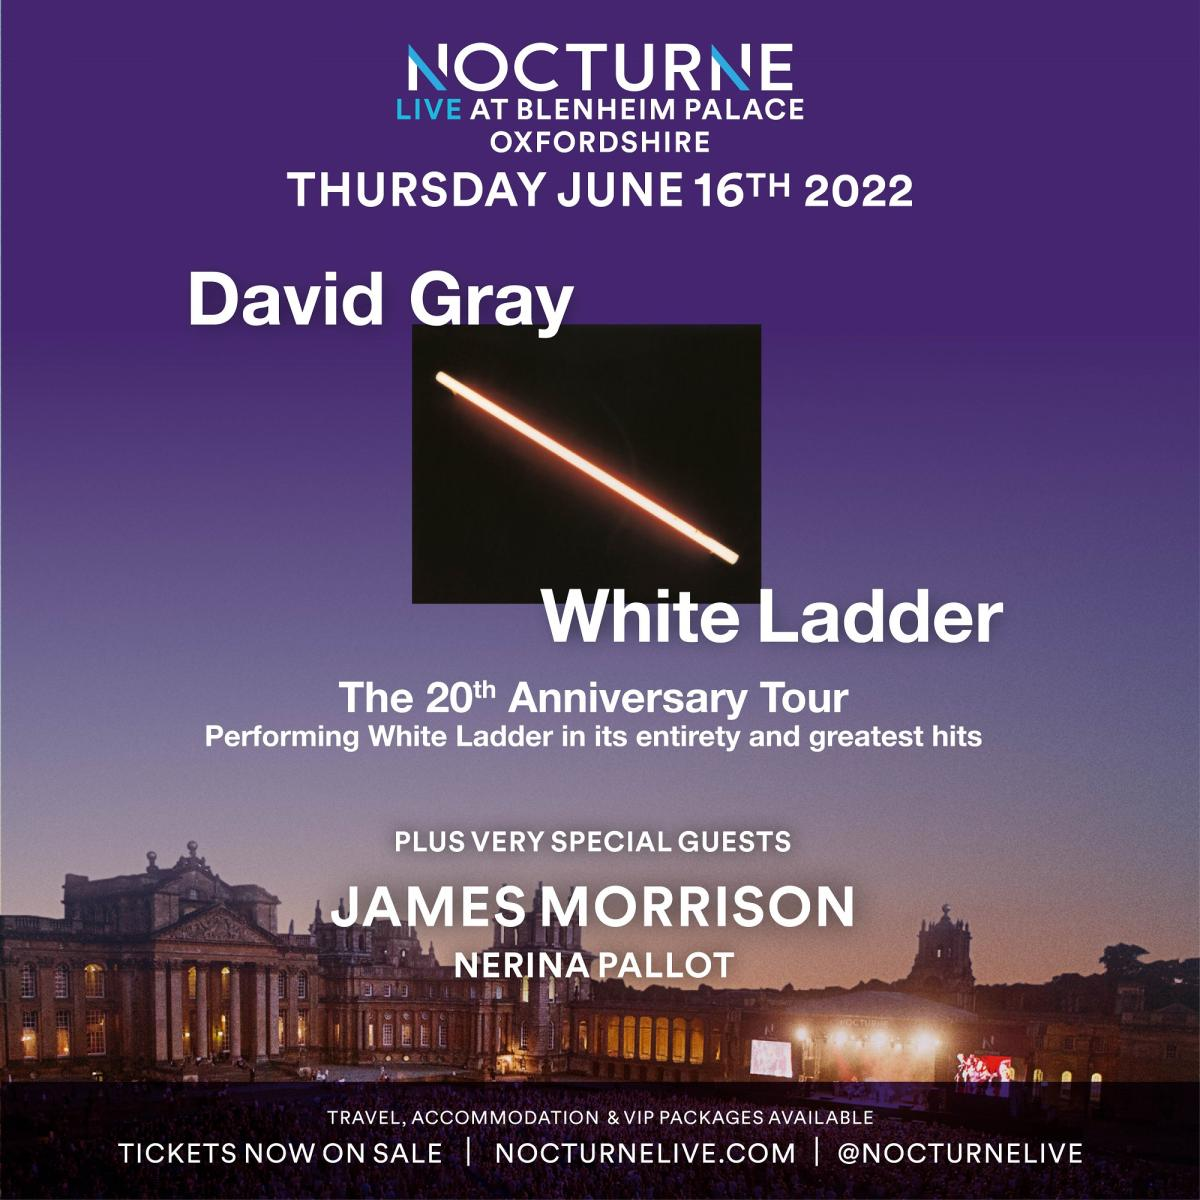 Nocturne Live 2022 at Blenheim Palace - Poster 02